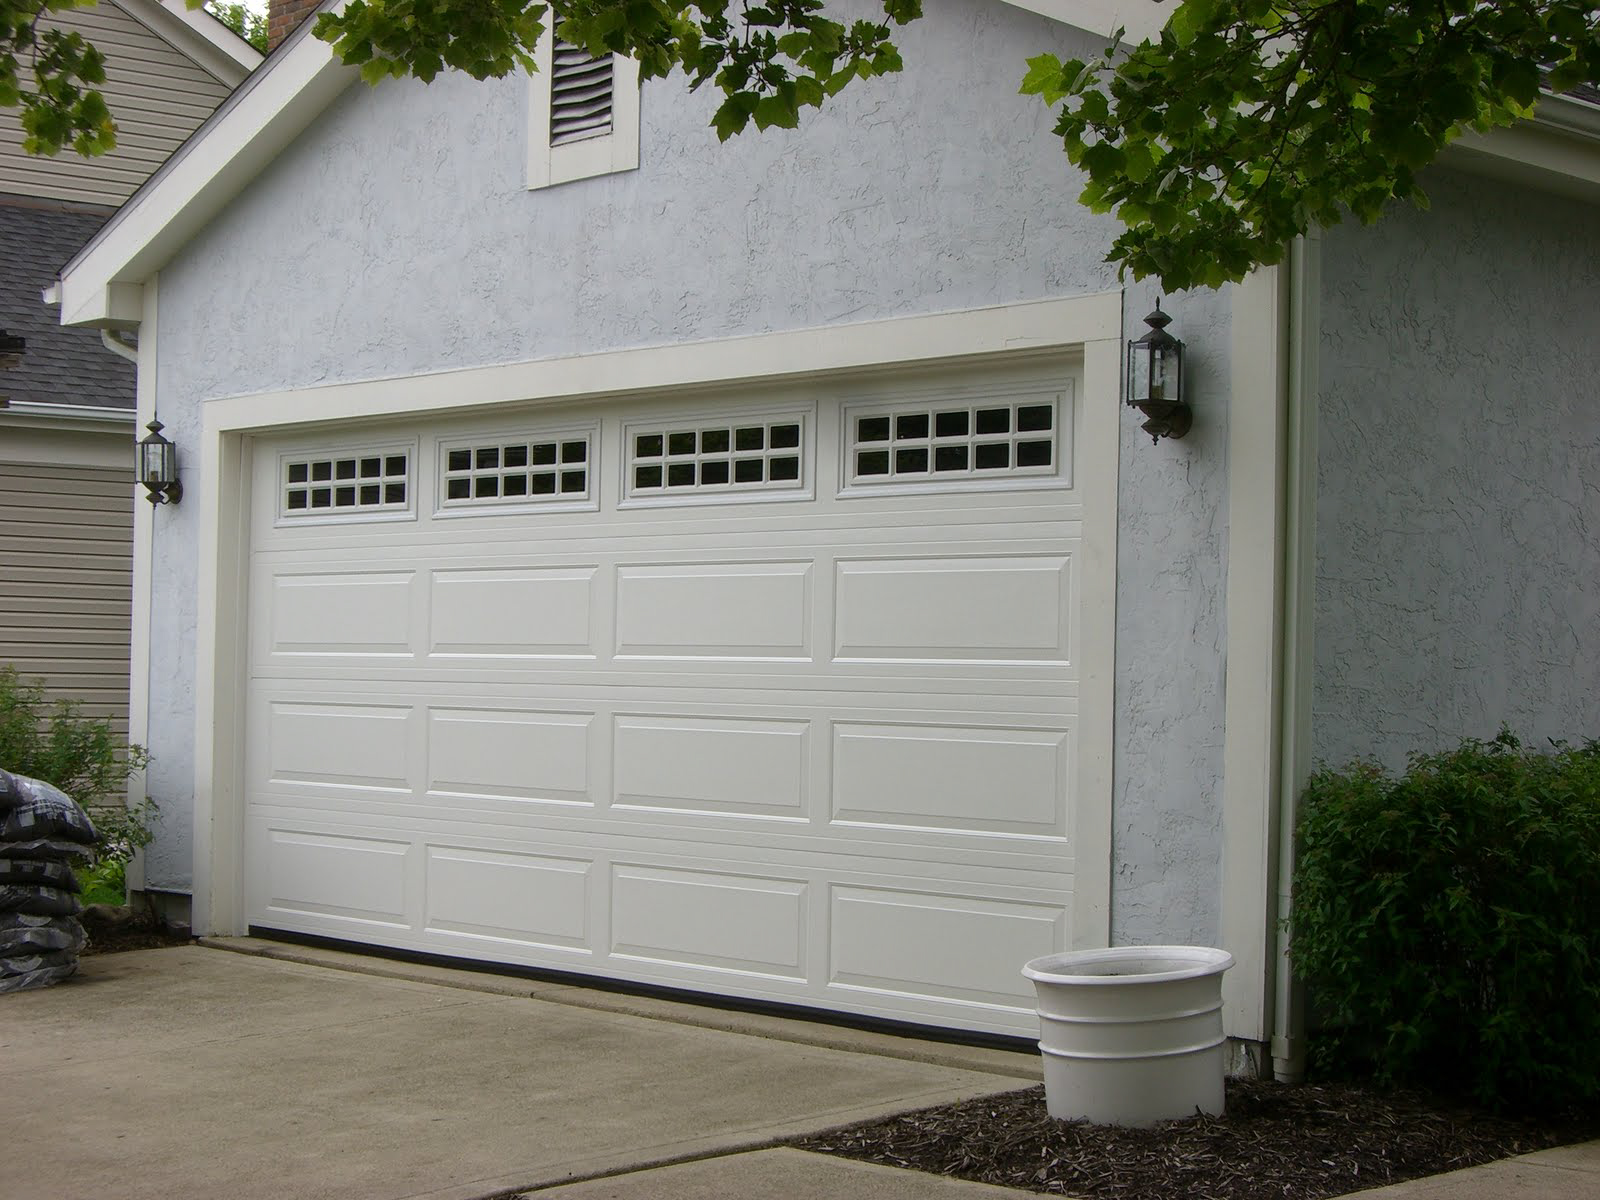 Raised Panel Door Kynar White with Windows